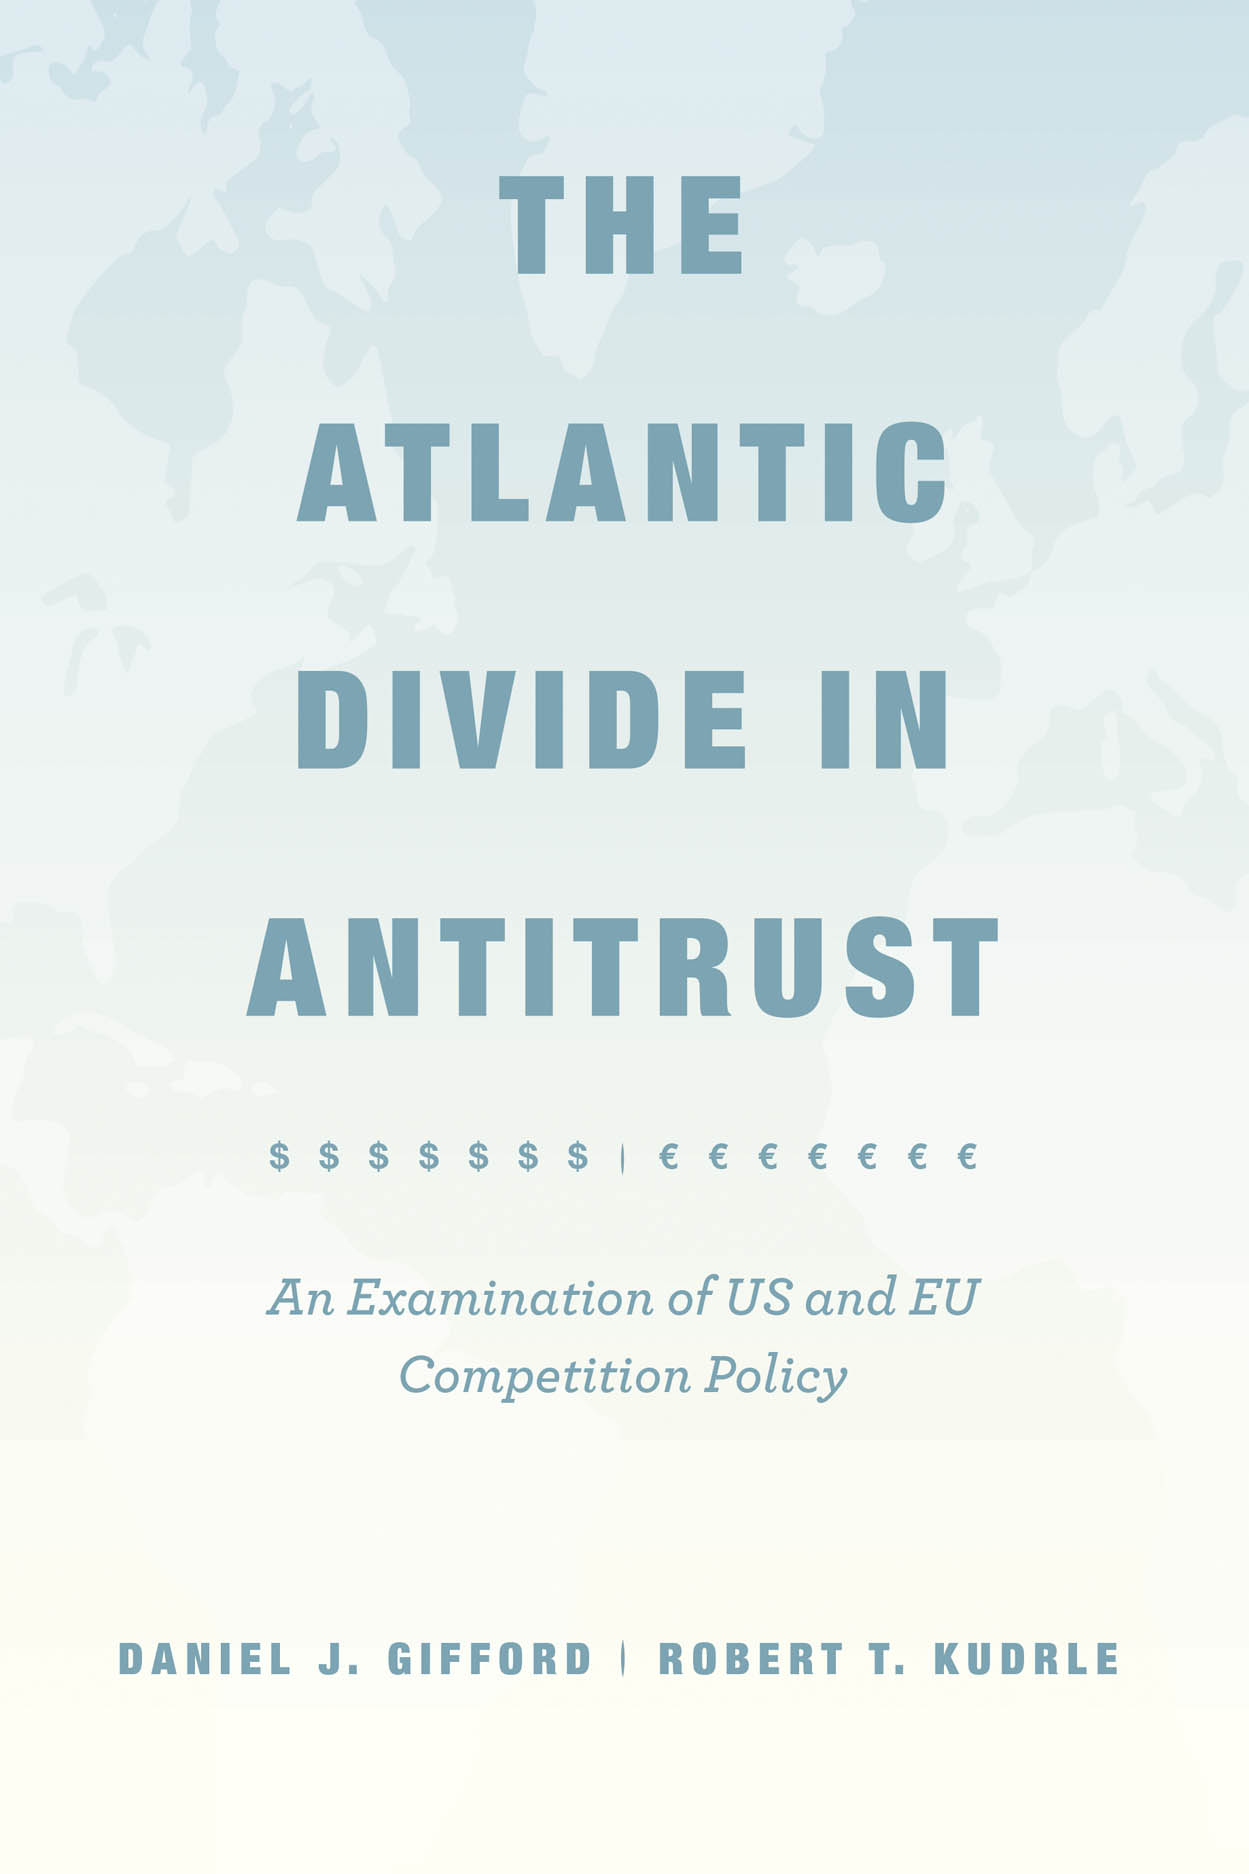 The Atlantic Divide in Antitrust: An Examination of US and EU Competition Policy